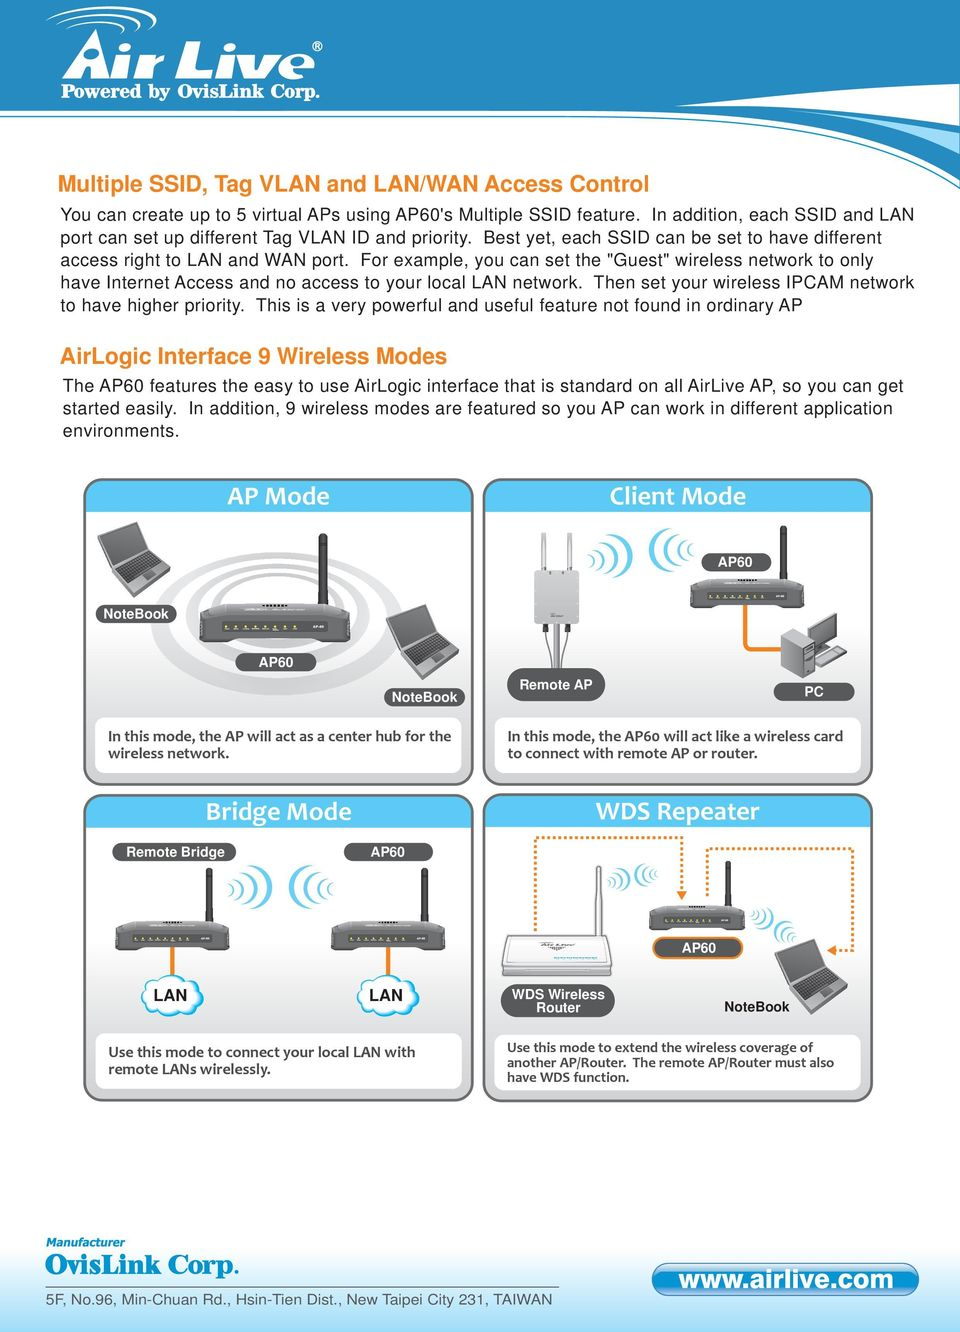 "For example, you can set the ""Guest"" wireless network to only have Internet Access and no access to your local LAN network. Then set your wireless IAM network to have higher priority."